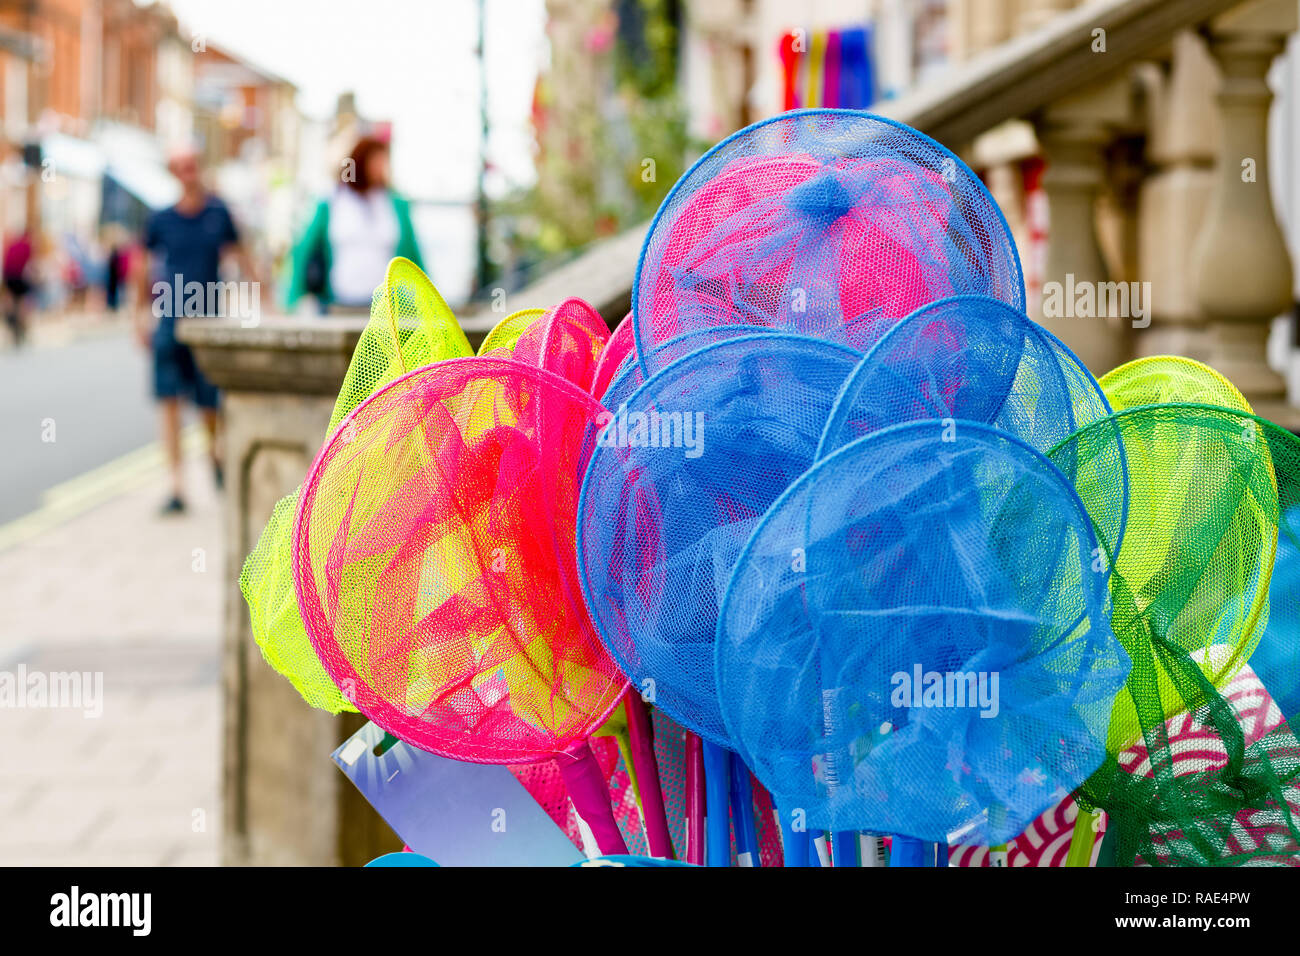 Colourful telescopic fishing nets on display for sale in the popular seaside town Southwold of the UK Stock Photo